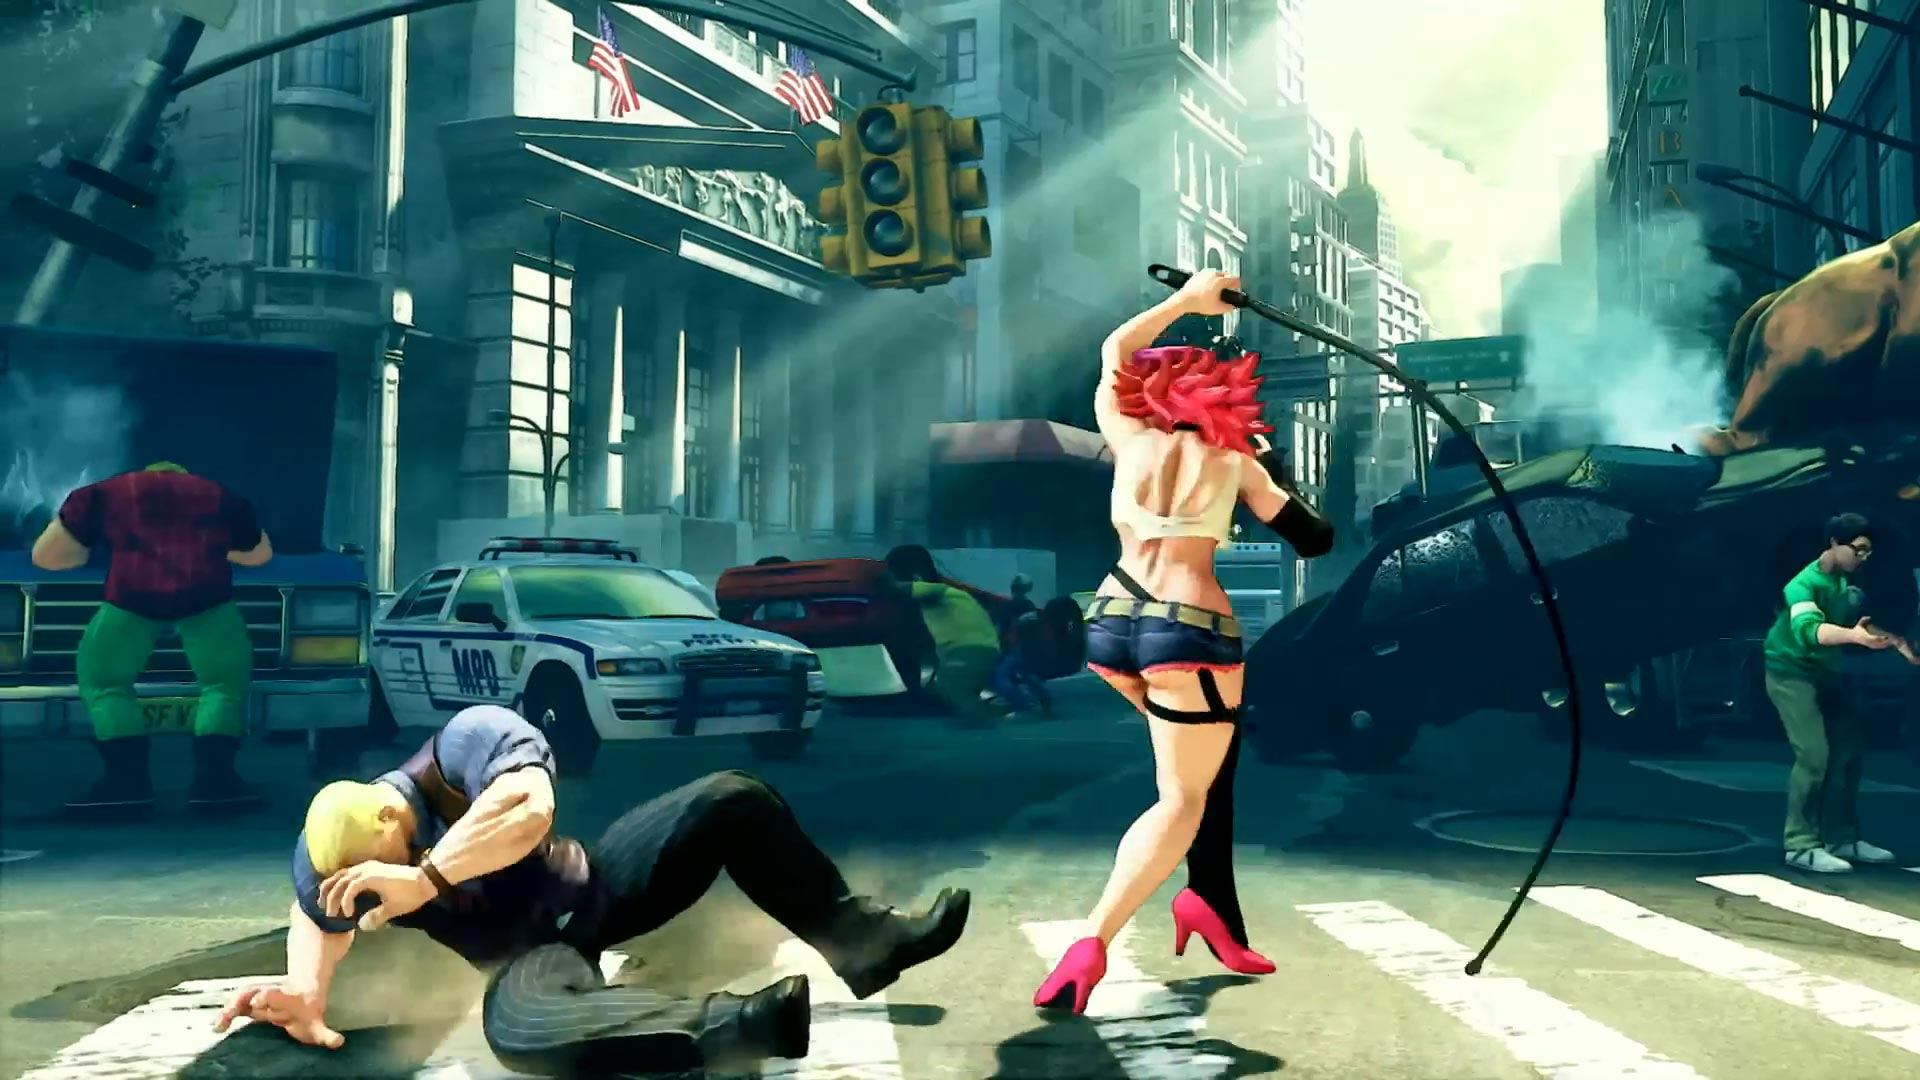 Street Fighter 5 leaked gallery of E. Honda, Lucia and Poison 25 out of 35 image gallery